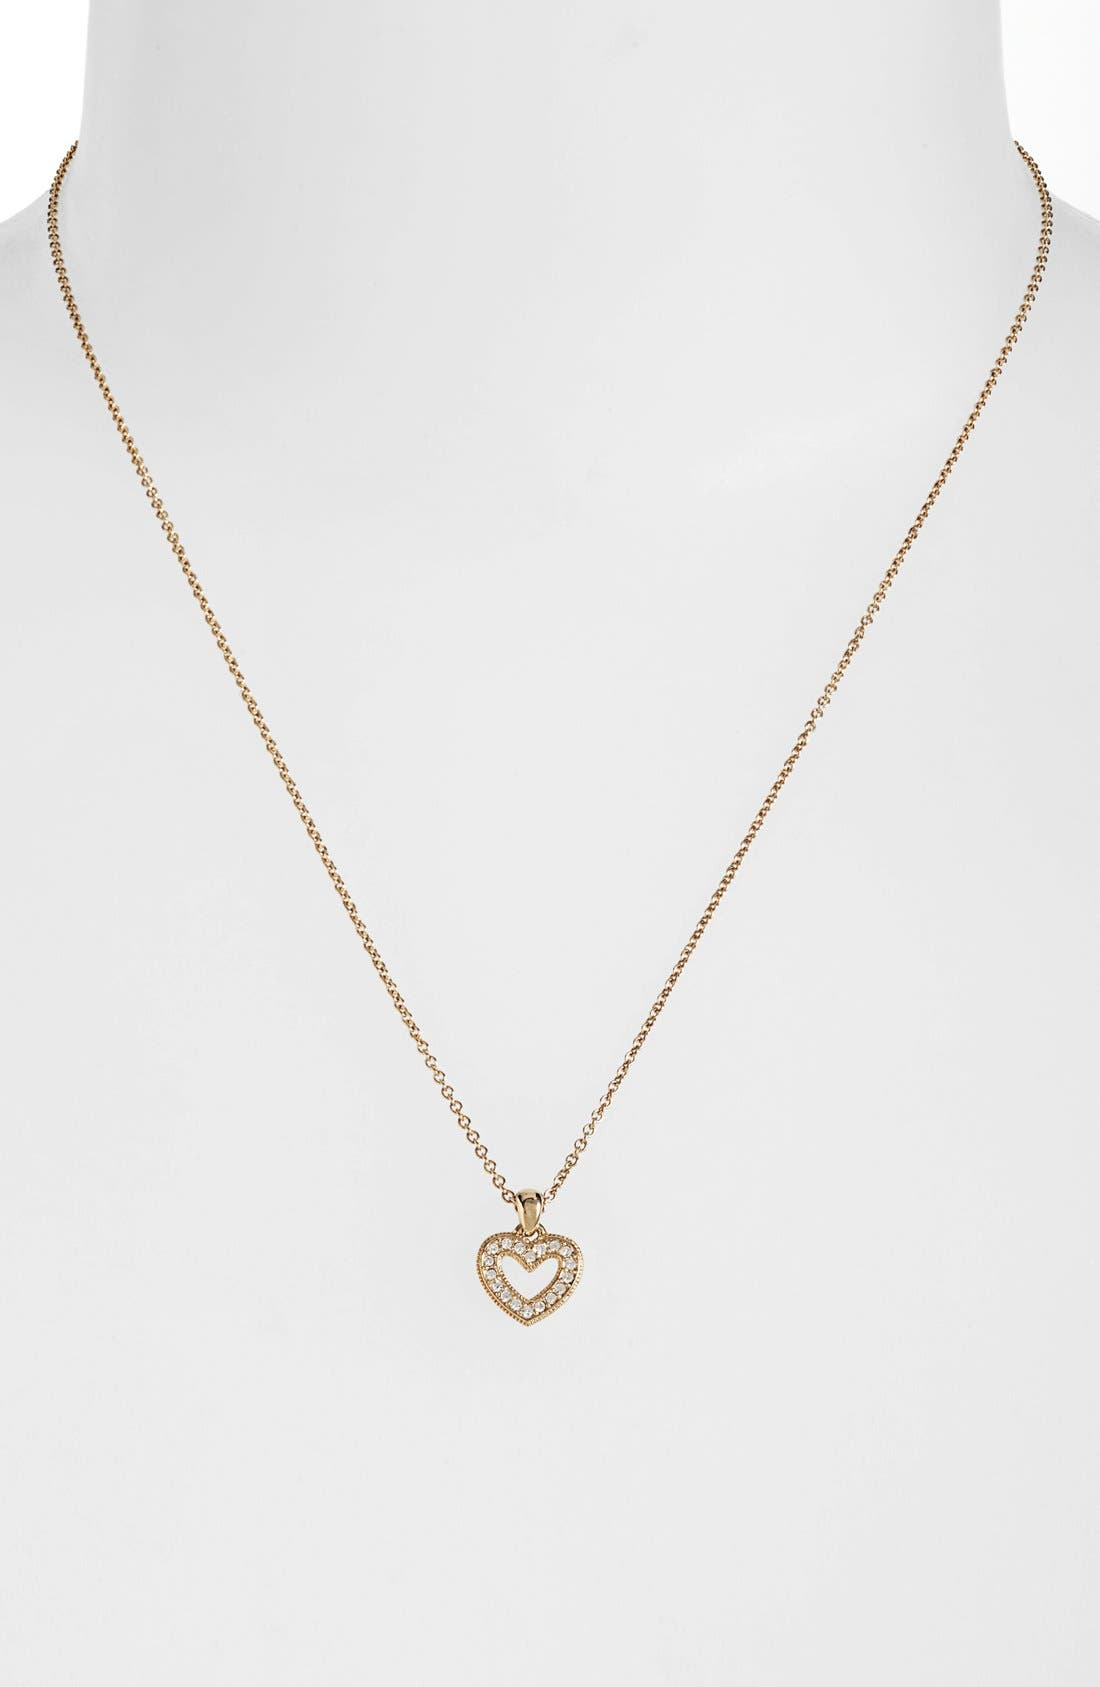 Alternate Image 1 Selected - Nadri Small Heart Pendant Necklace (Nordstrom Exclusive)